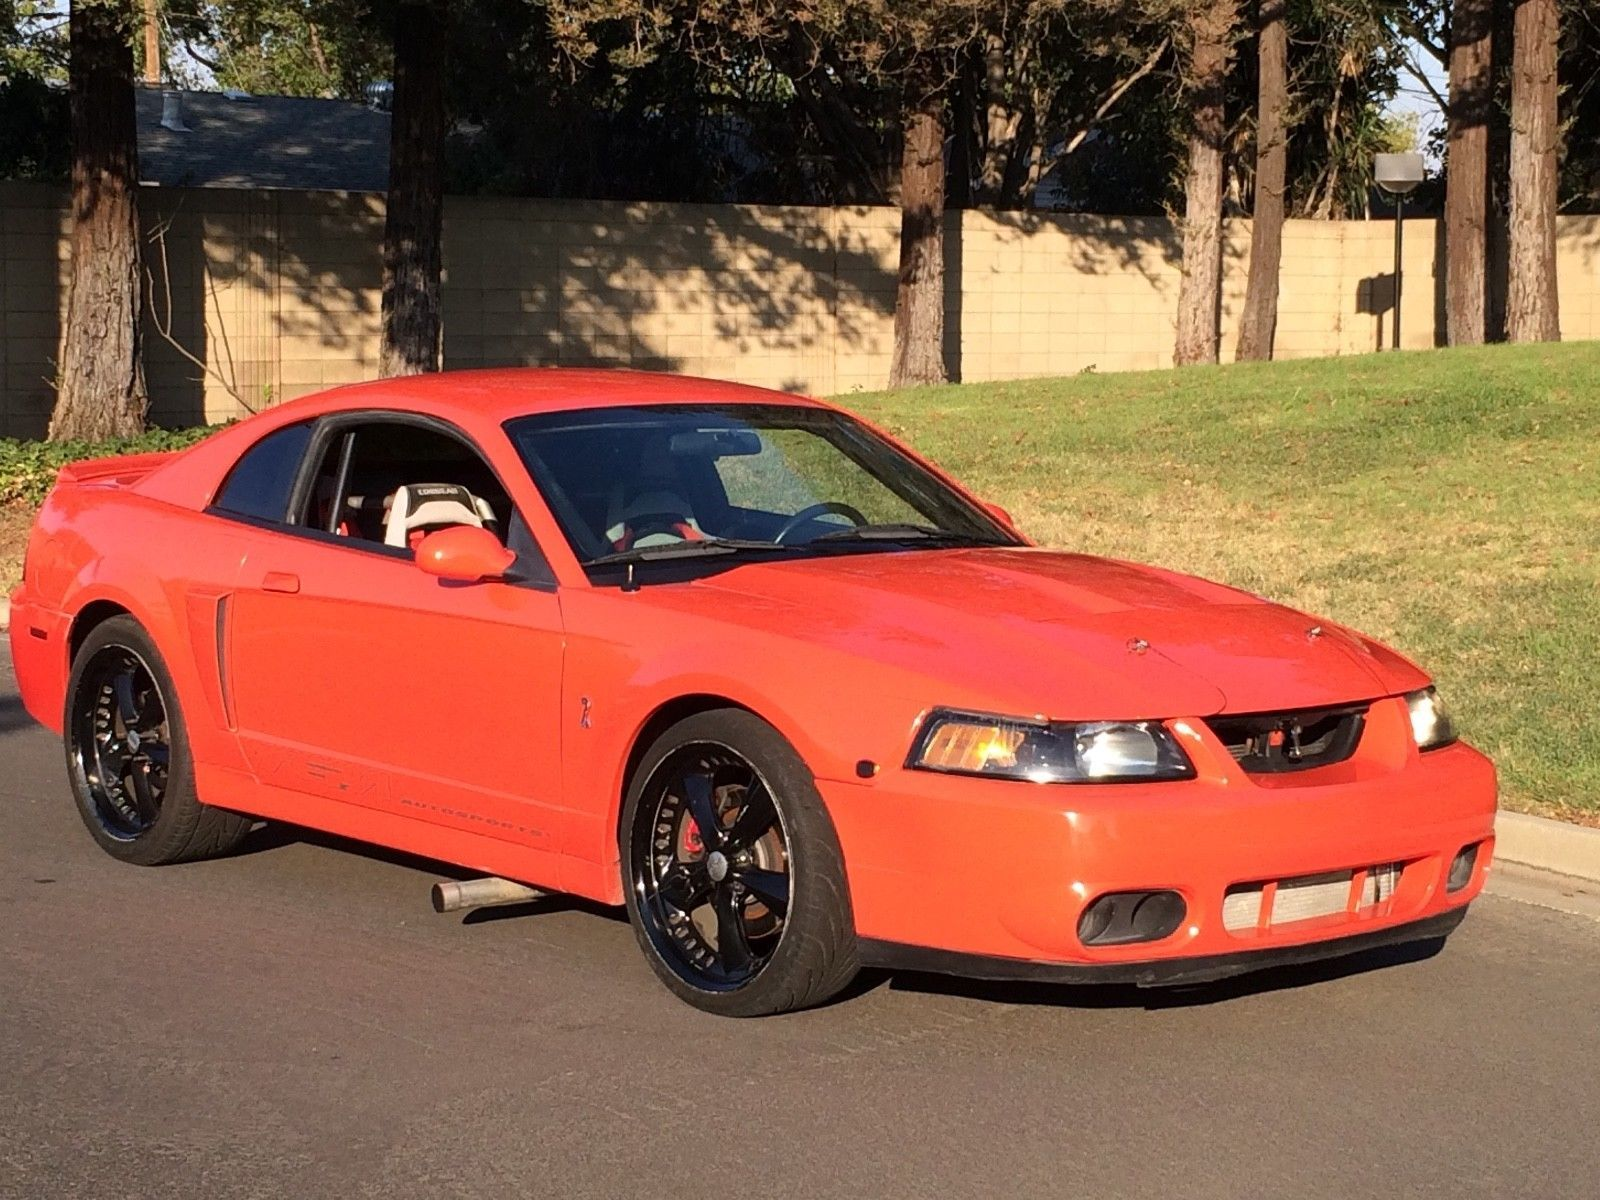 Ebay 2003 ford mustang cobra competition orange svt cobra 37k mii 787 hp 10 sec